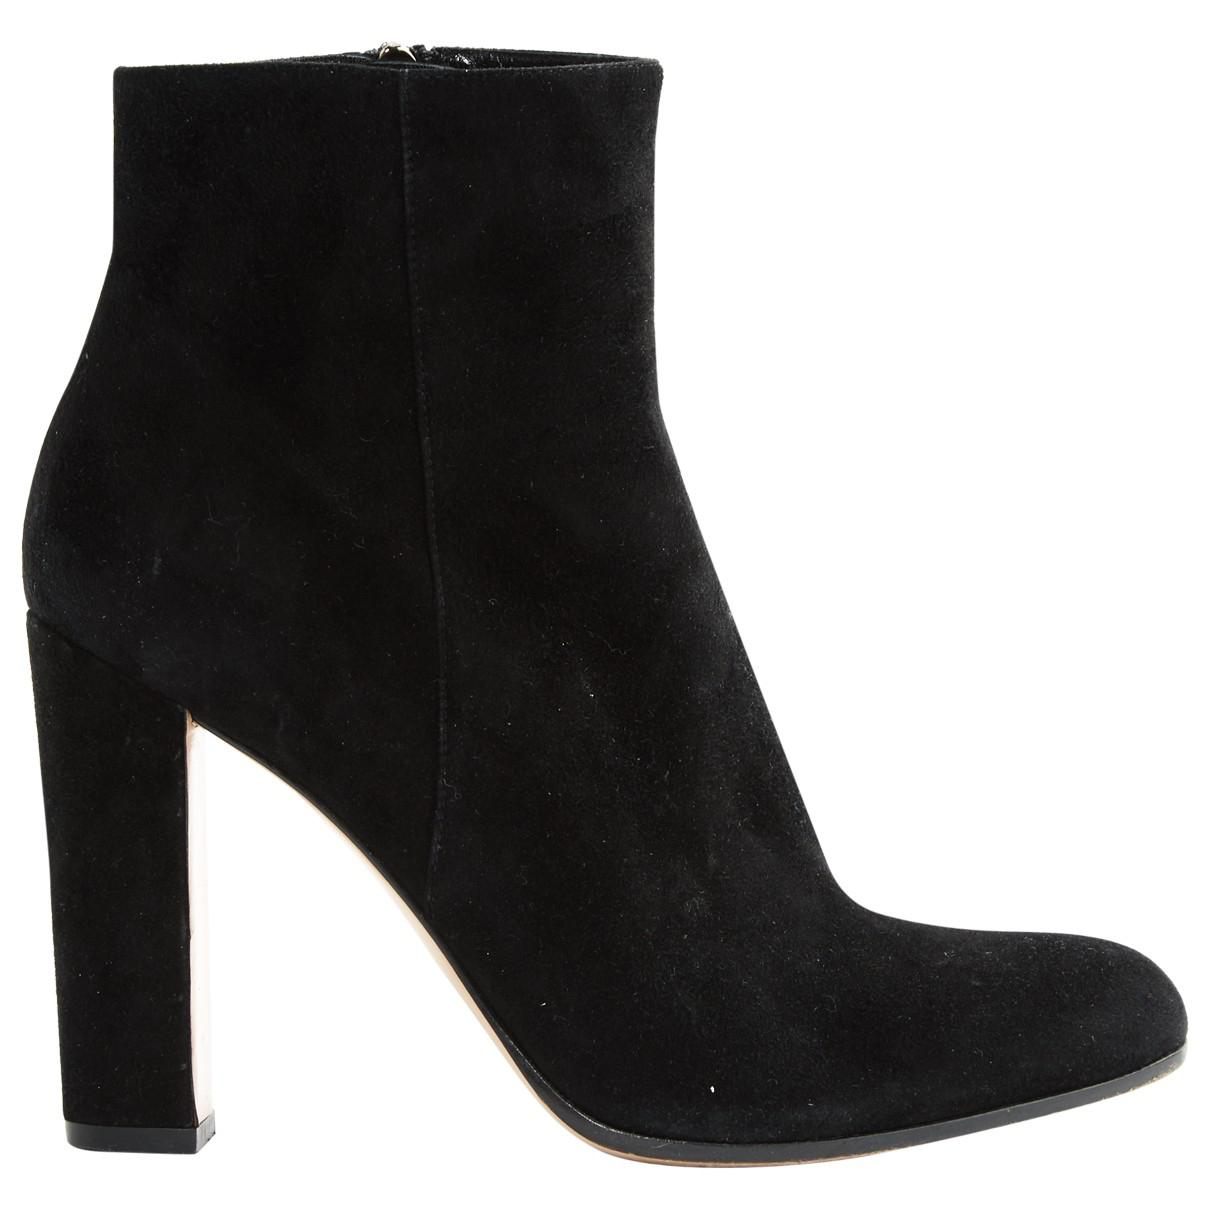 Pre-owned - Leather ankle boots Gianvito Rossi KilbXJ5WZb